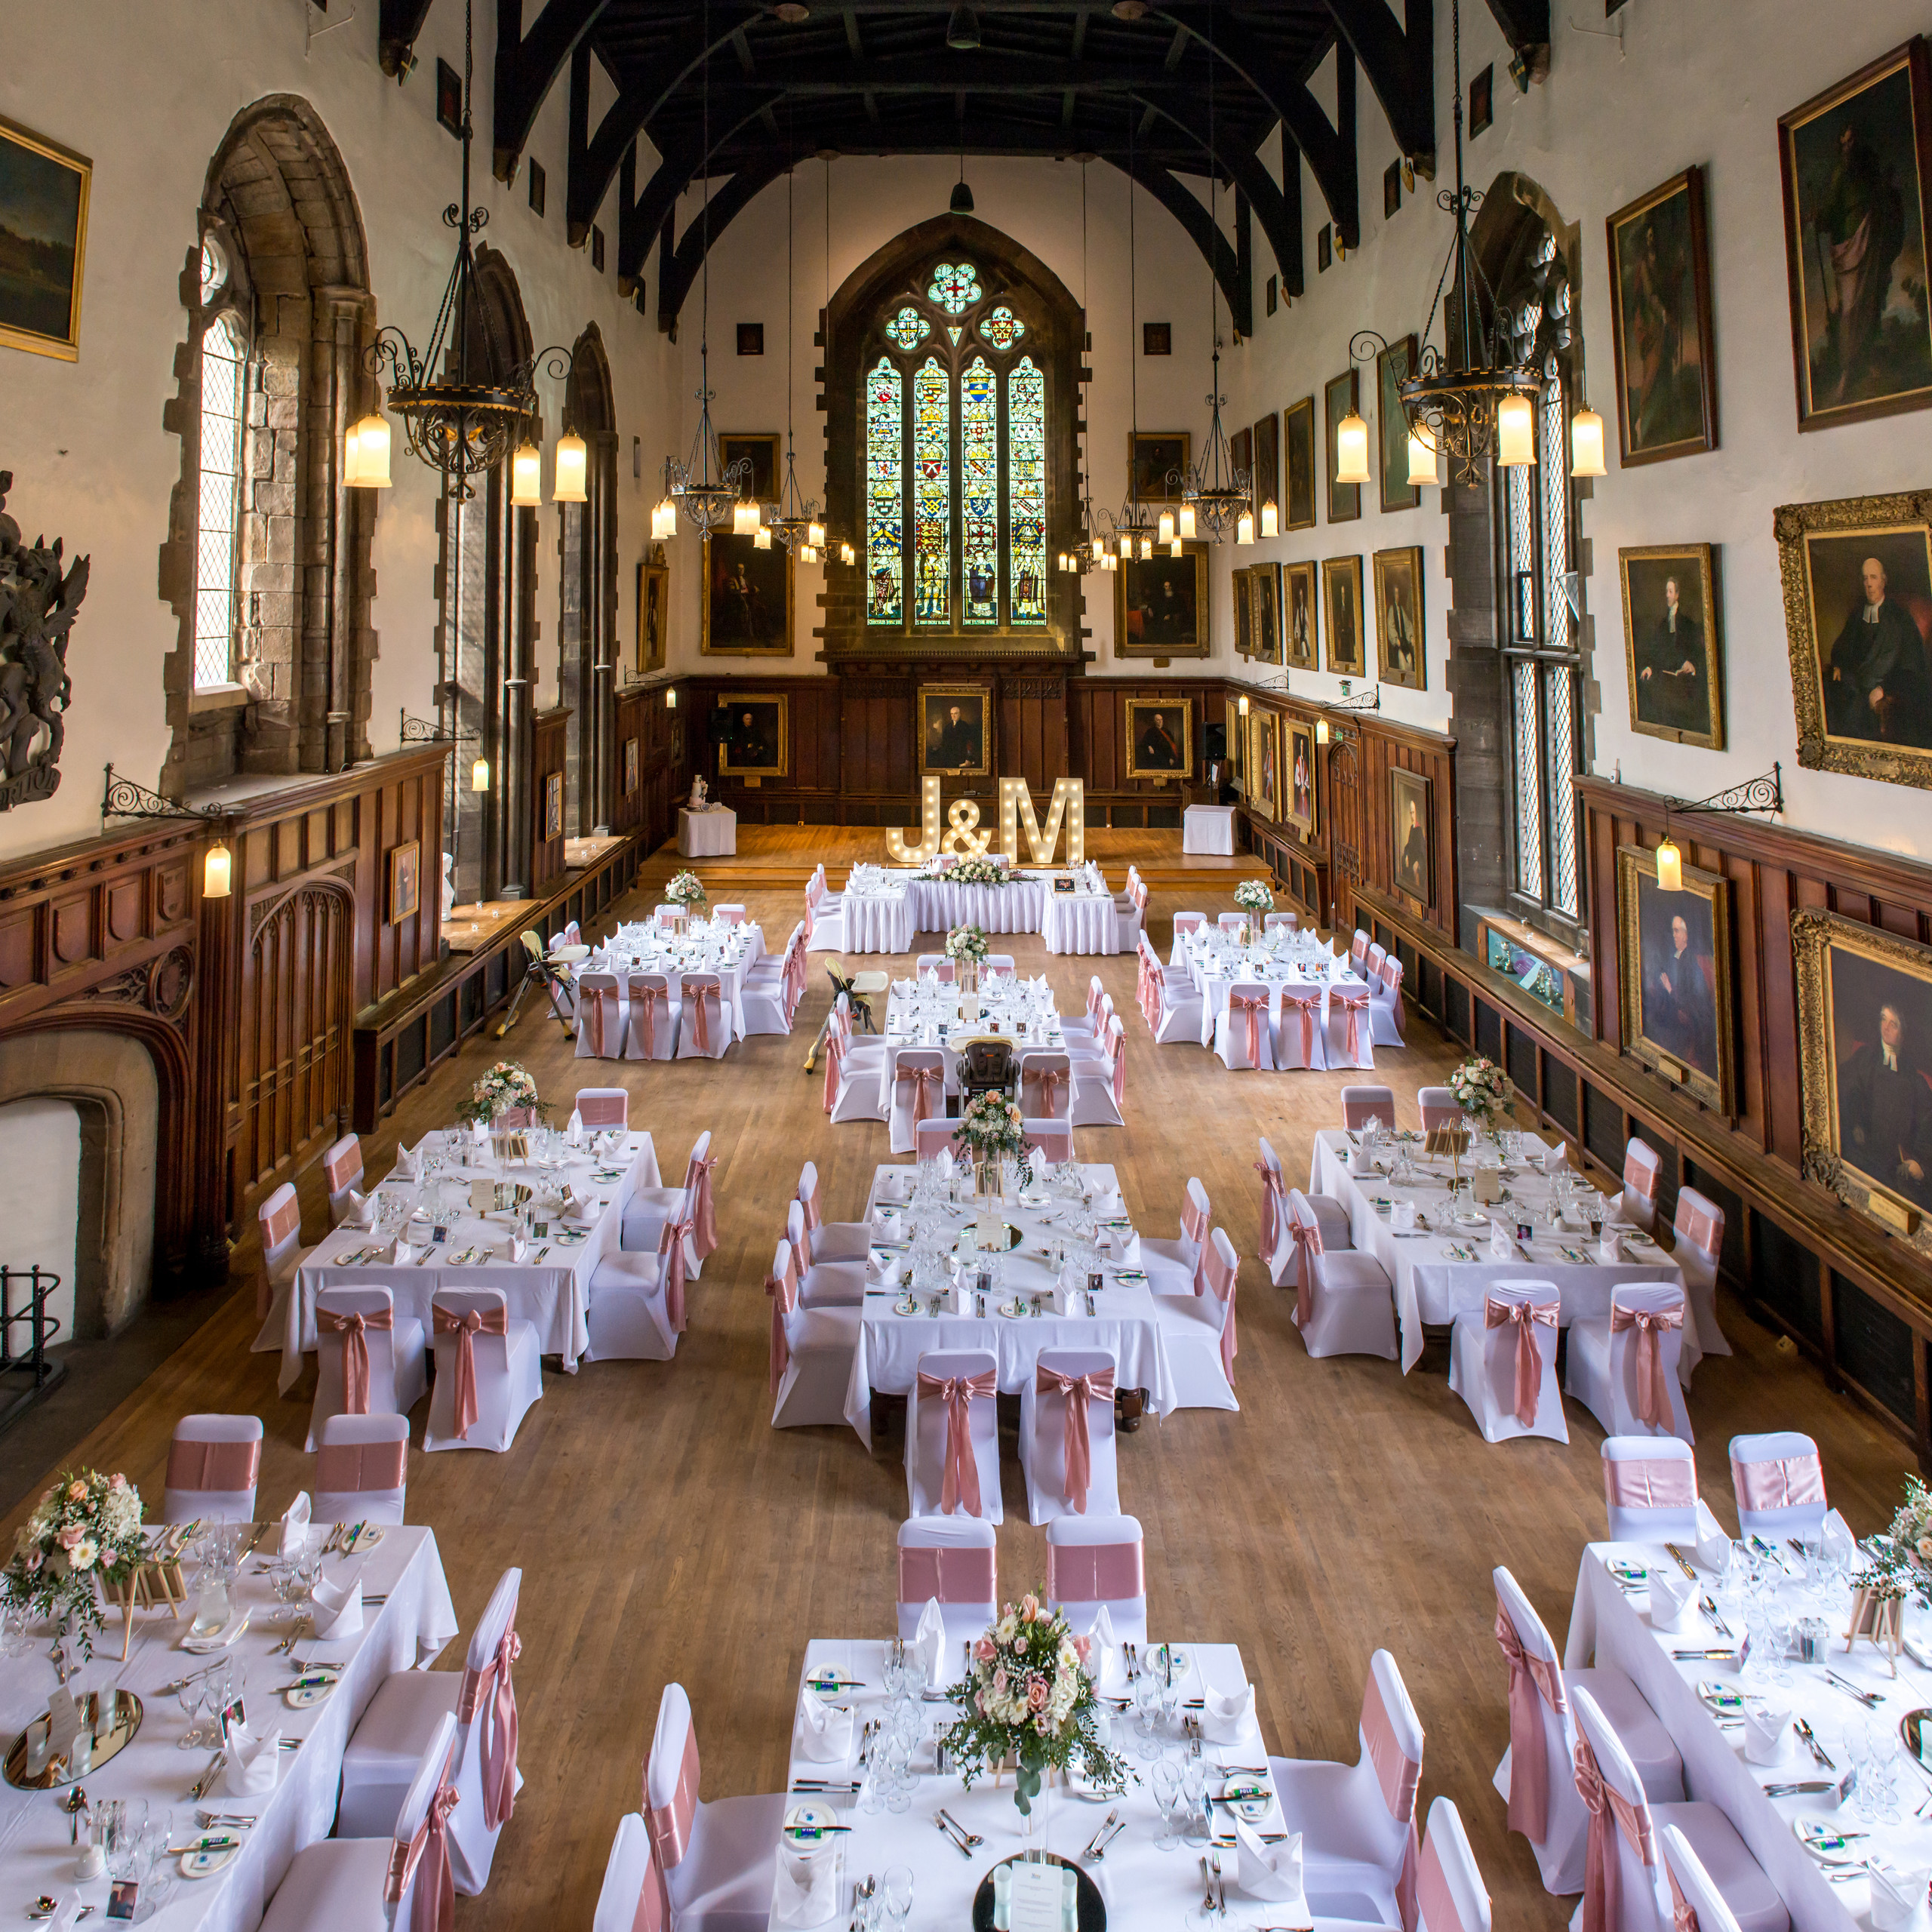 Photograph from balcony of wedding breakfast room decoration and seating arrangement and layout of Bishops Hall of historic venue Durham Castle in Durham City